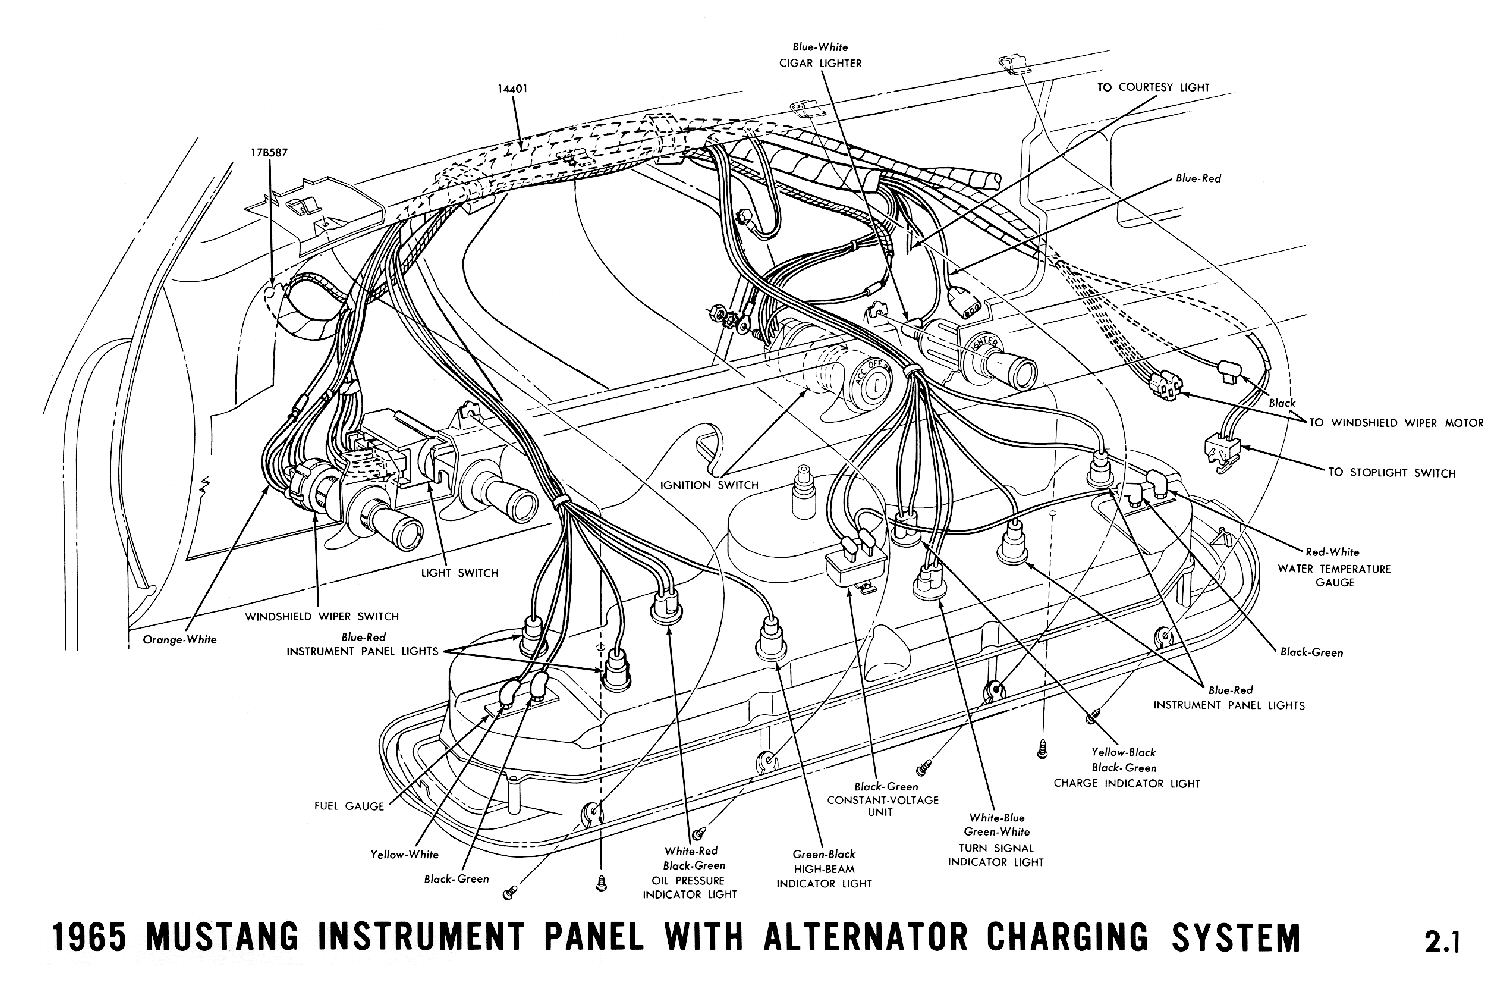 1965a 1965 mustang wiring diagrams average joe restoration 1965 ford mustang wiring diagrams at arjmand.co